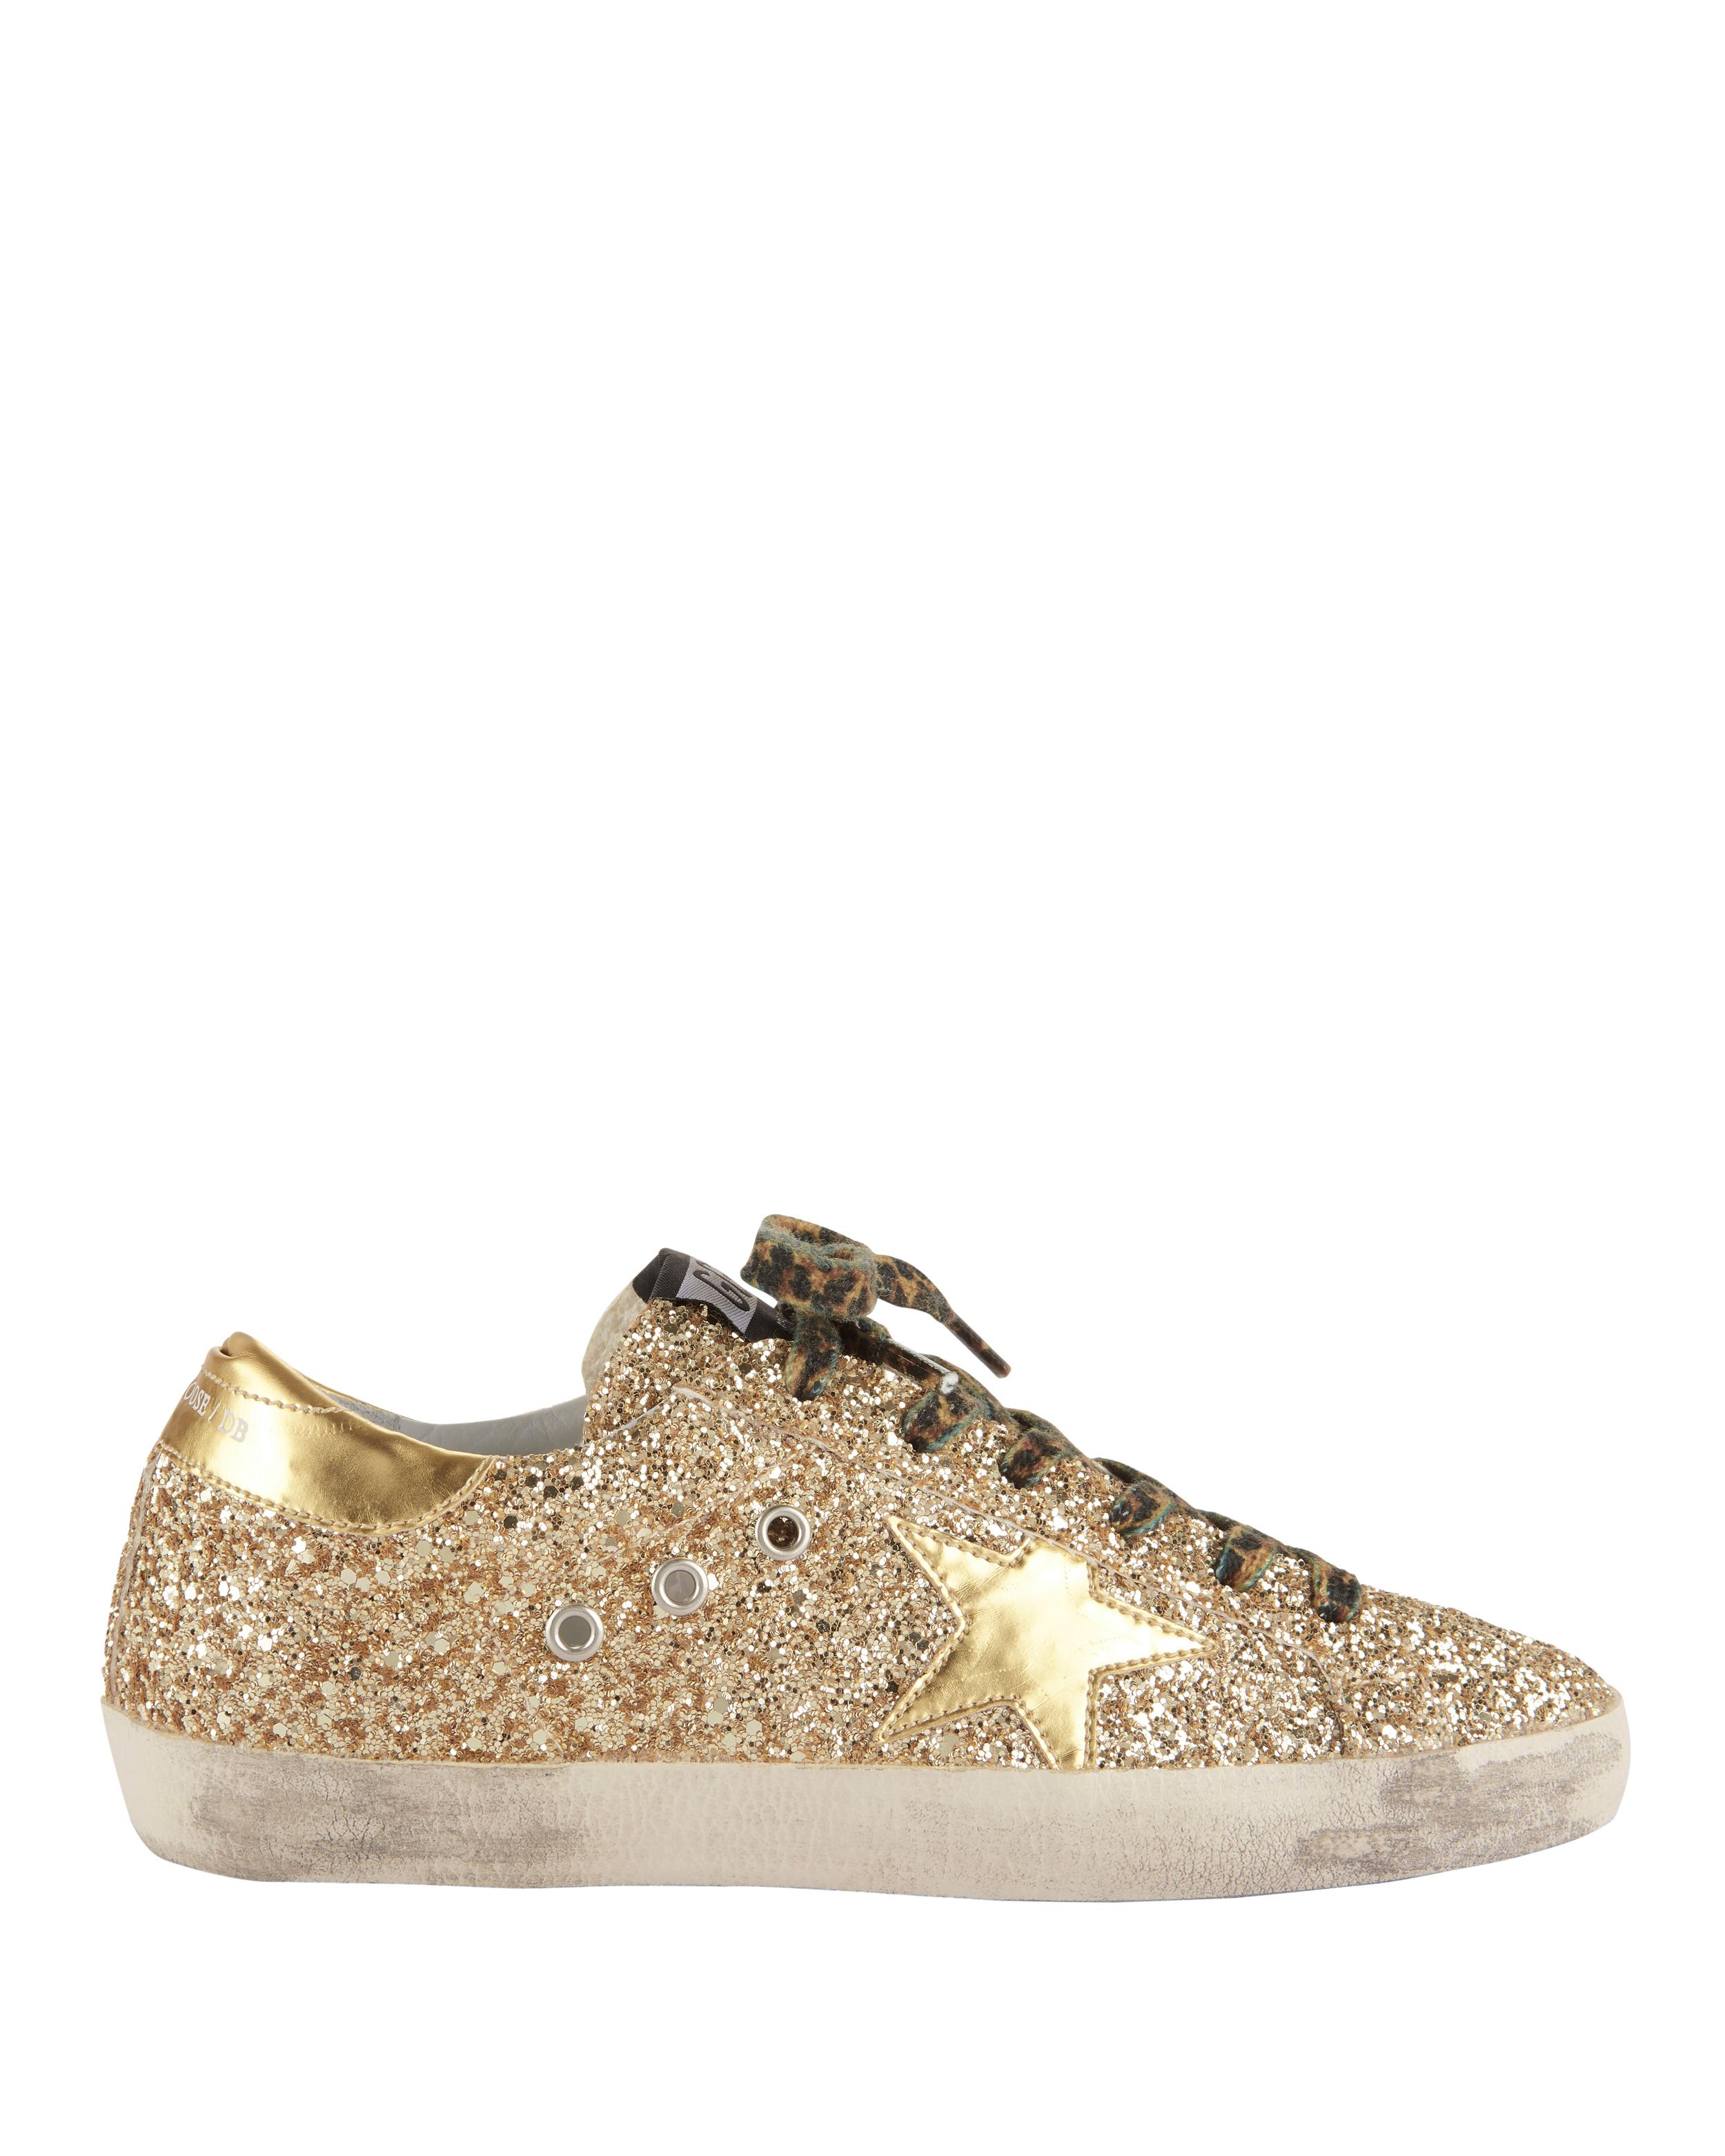 Sale - Superstar Glitter Lace-Up Trainers - Golden Goose Deluxe Brand Golden Goose For Cheap Discount 100% Guaranteed Cheap Best Outlet Newest 927EA